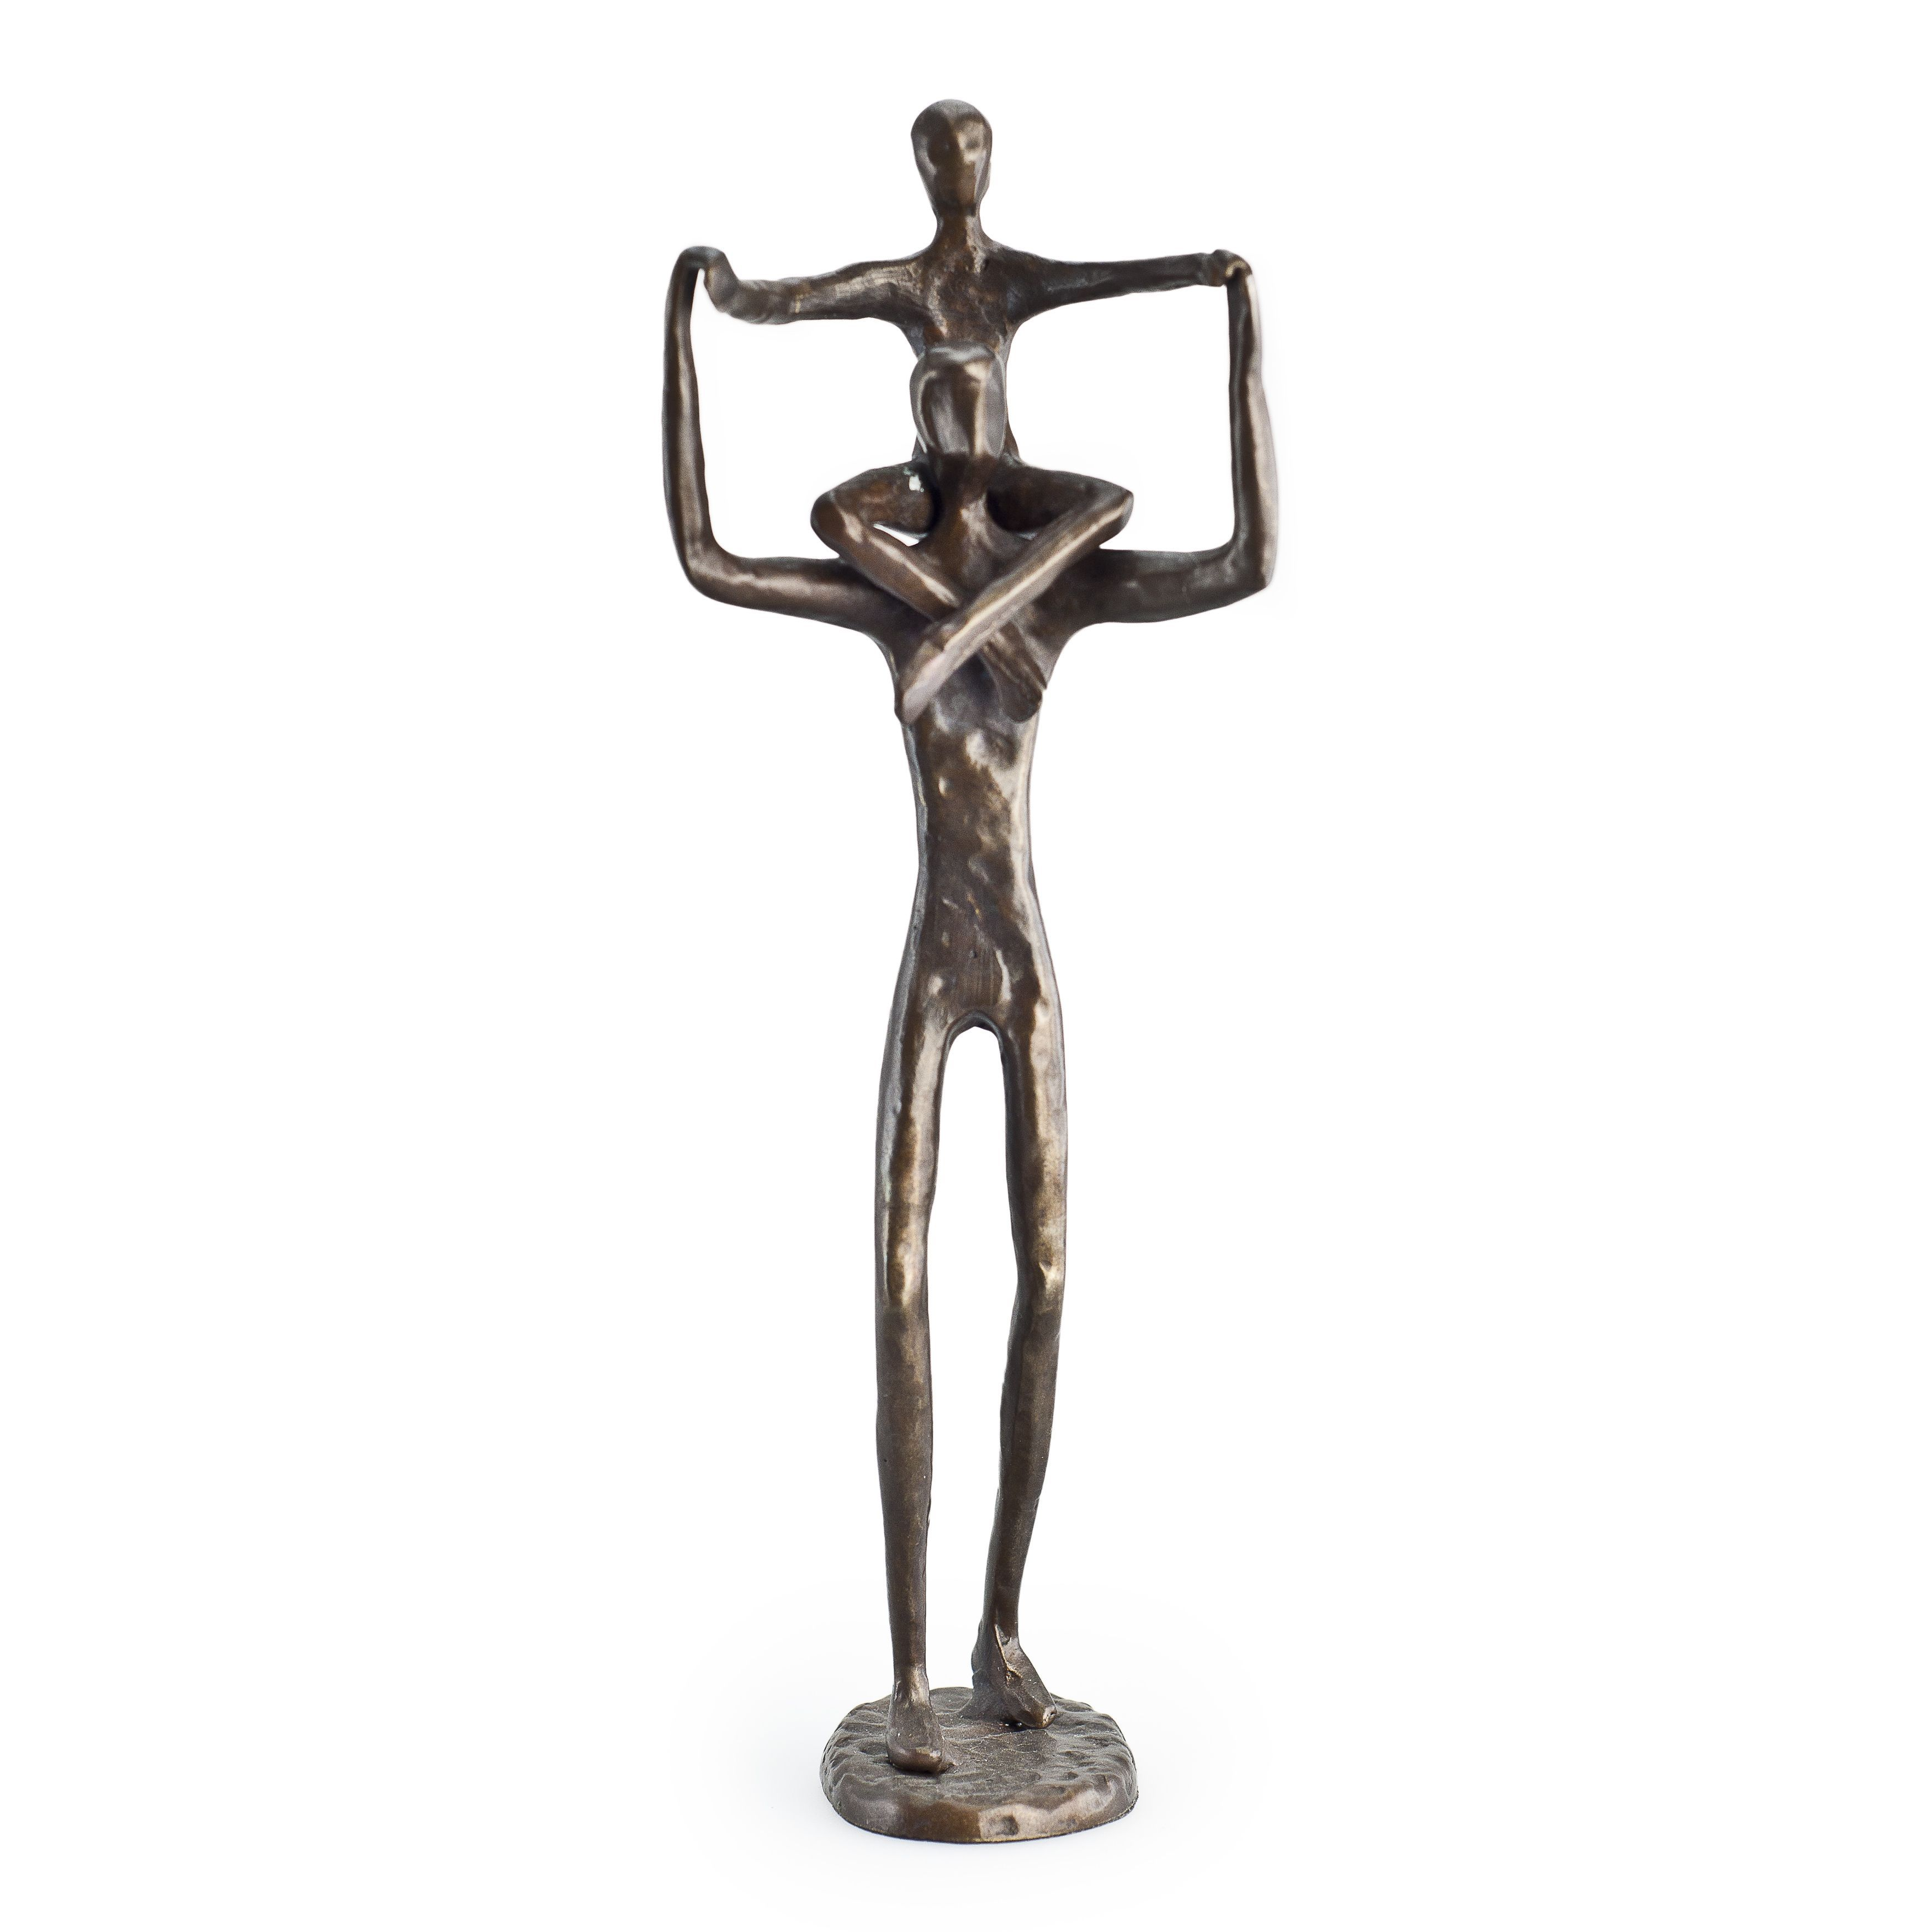 Proud and strong, this cast bronze sculpture celebrates the bond between a father and his child reminding us all that is wonderful about fatherhood! Love abounds with this uplifting pose as the artist conveys the joy in a father's heart. Great gift